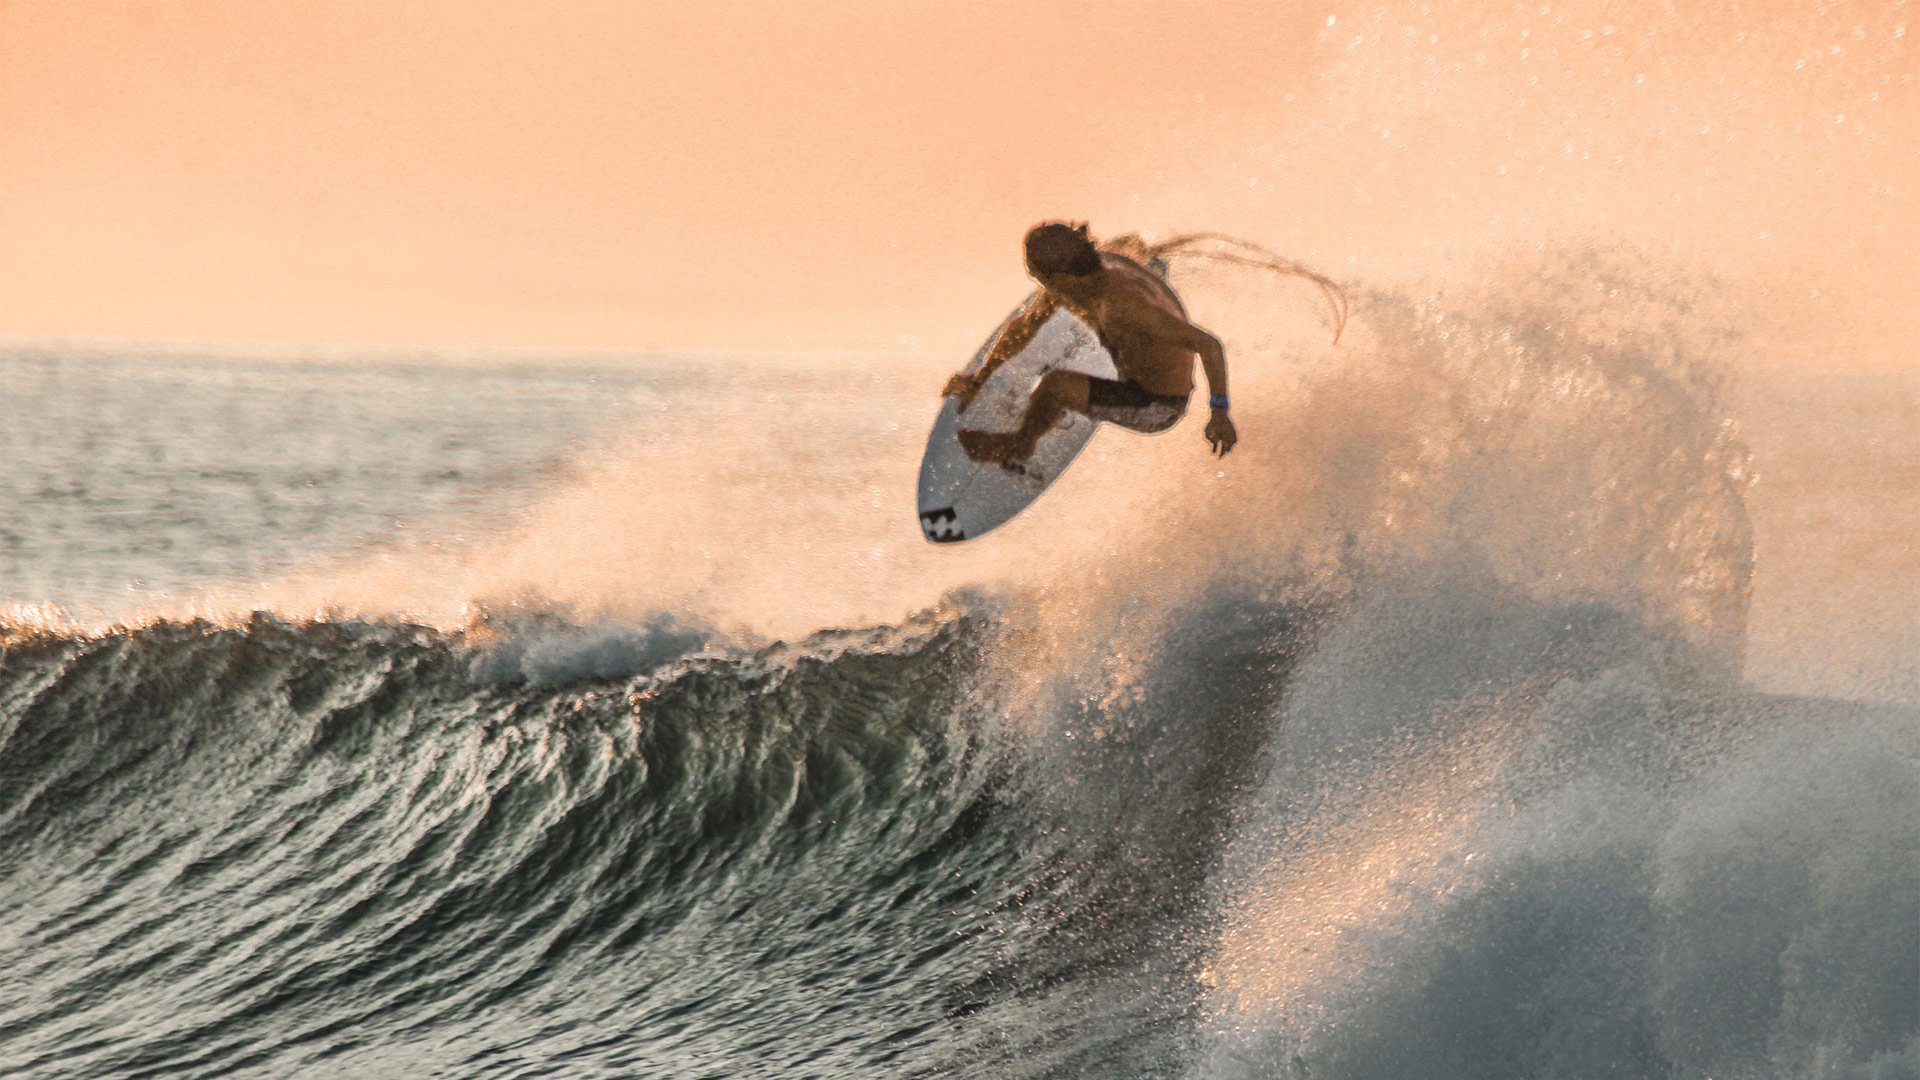 Surfing Prodigy Bryan Perez Joins Hype Energy's Athlete Team